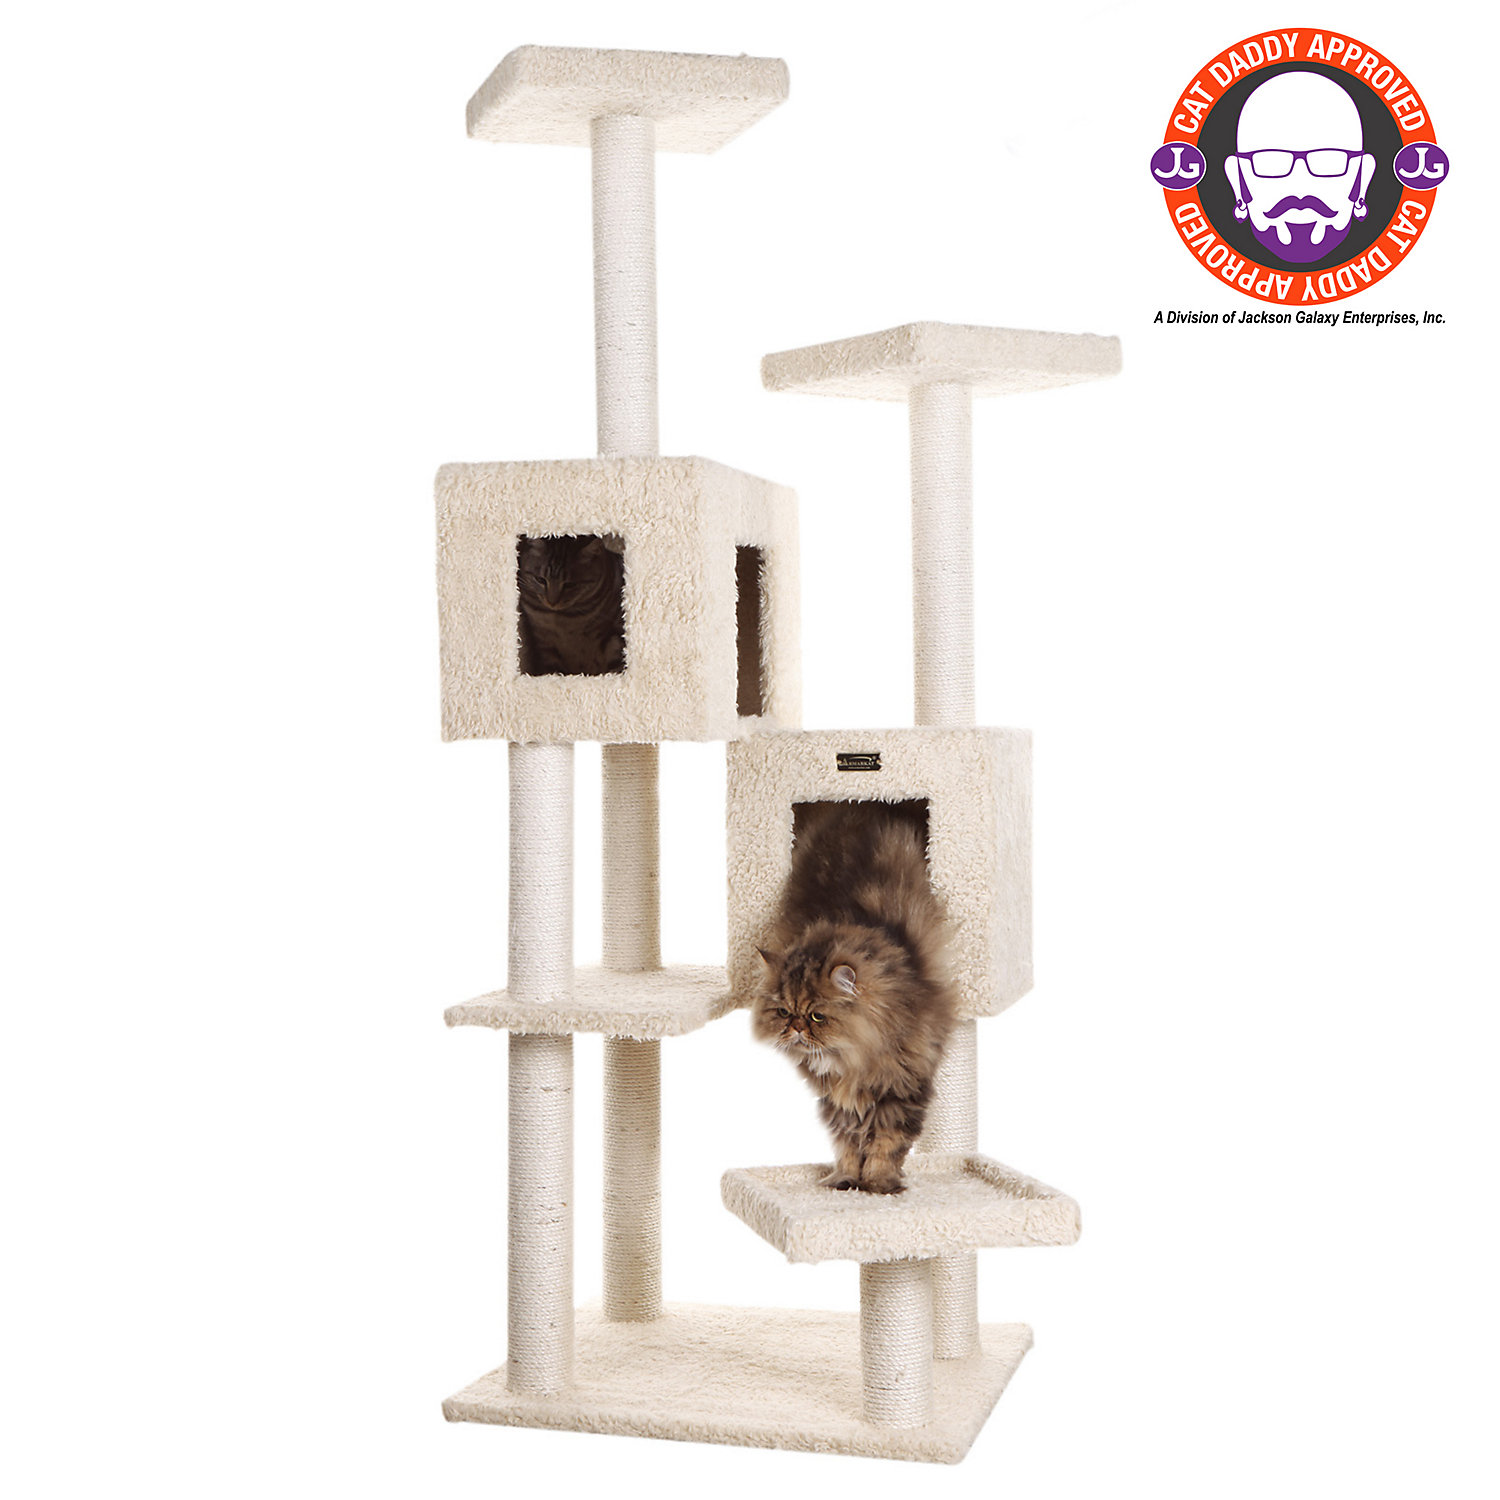 Armarkat Classic Cat Tree Model A6702 Beige